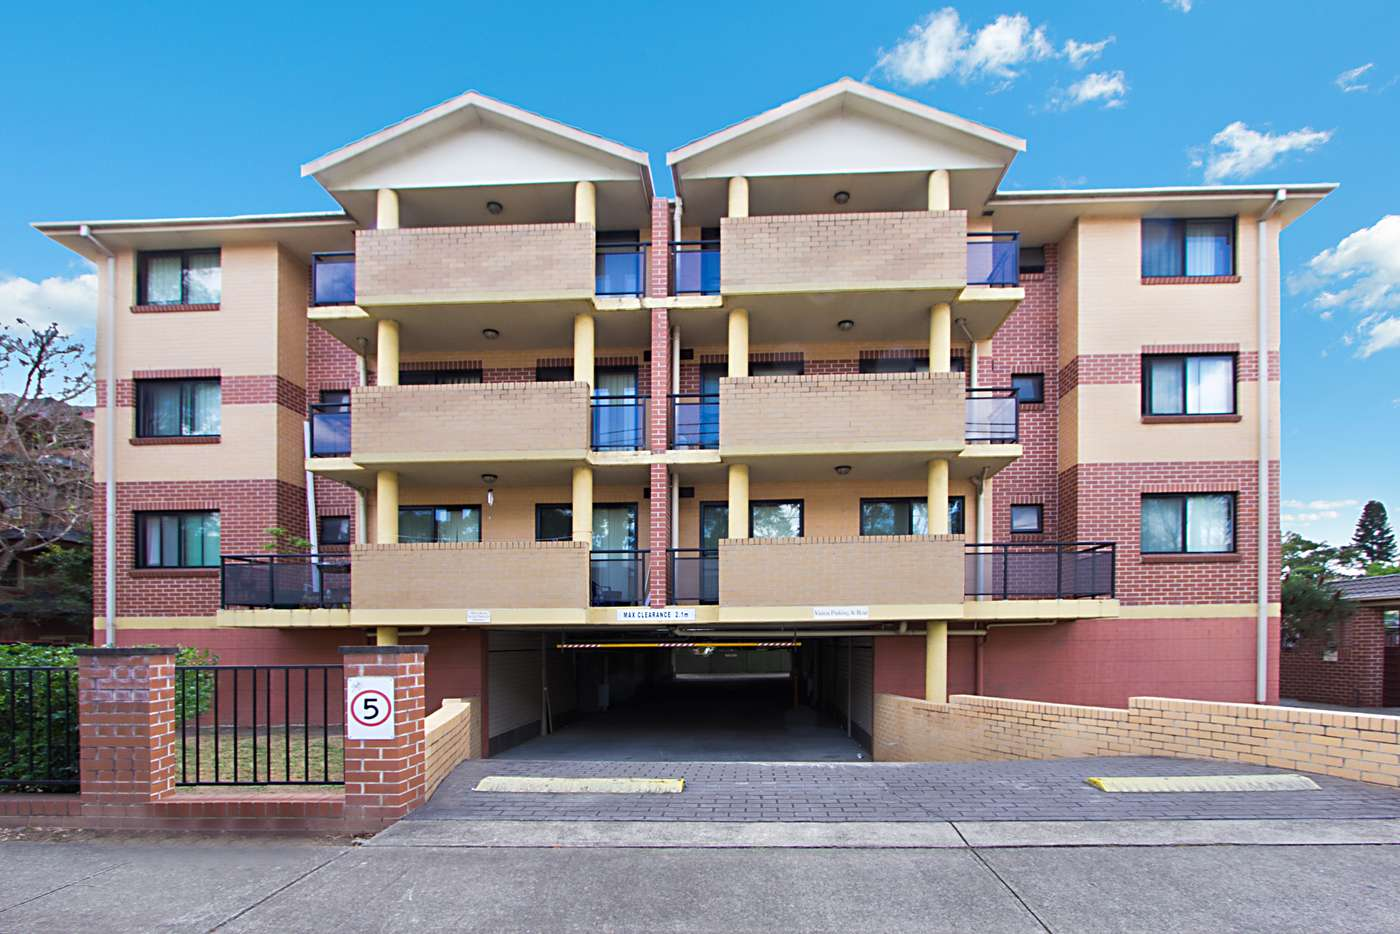 Main view of Homely unit listing, 73-75 Deakin Street, Silverwater NSW 2128